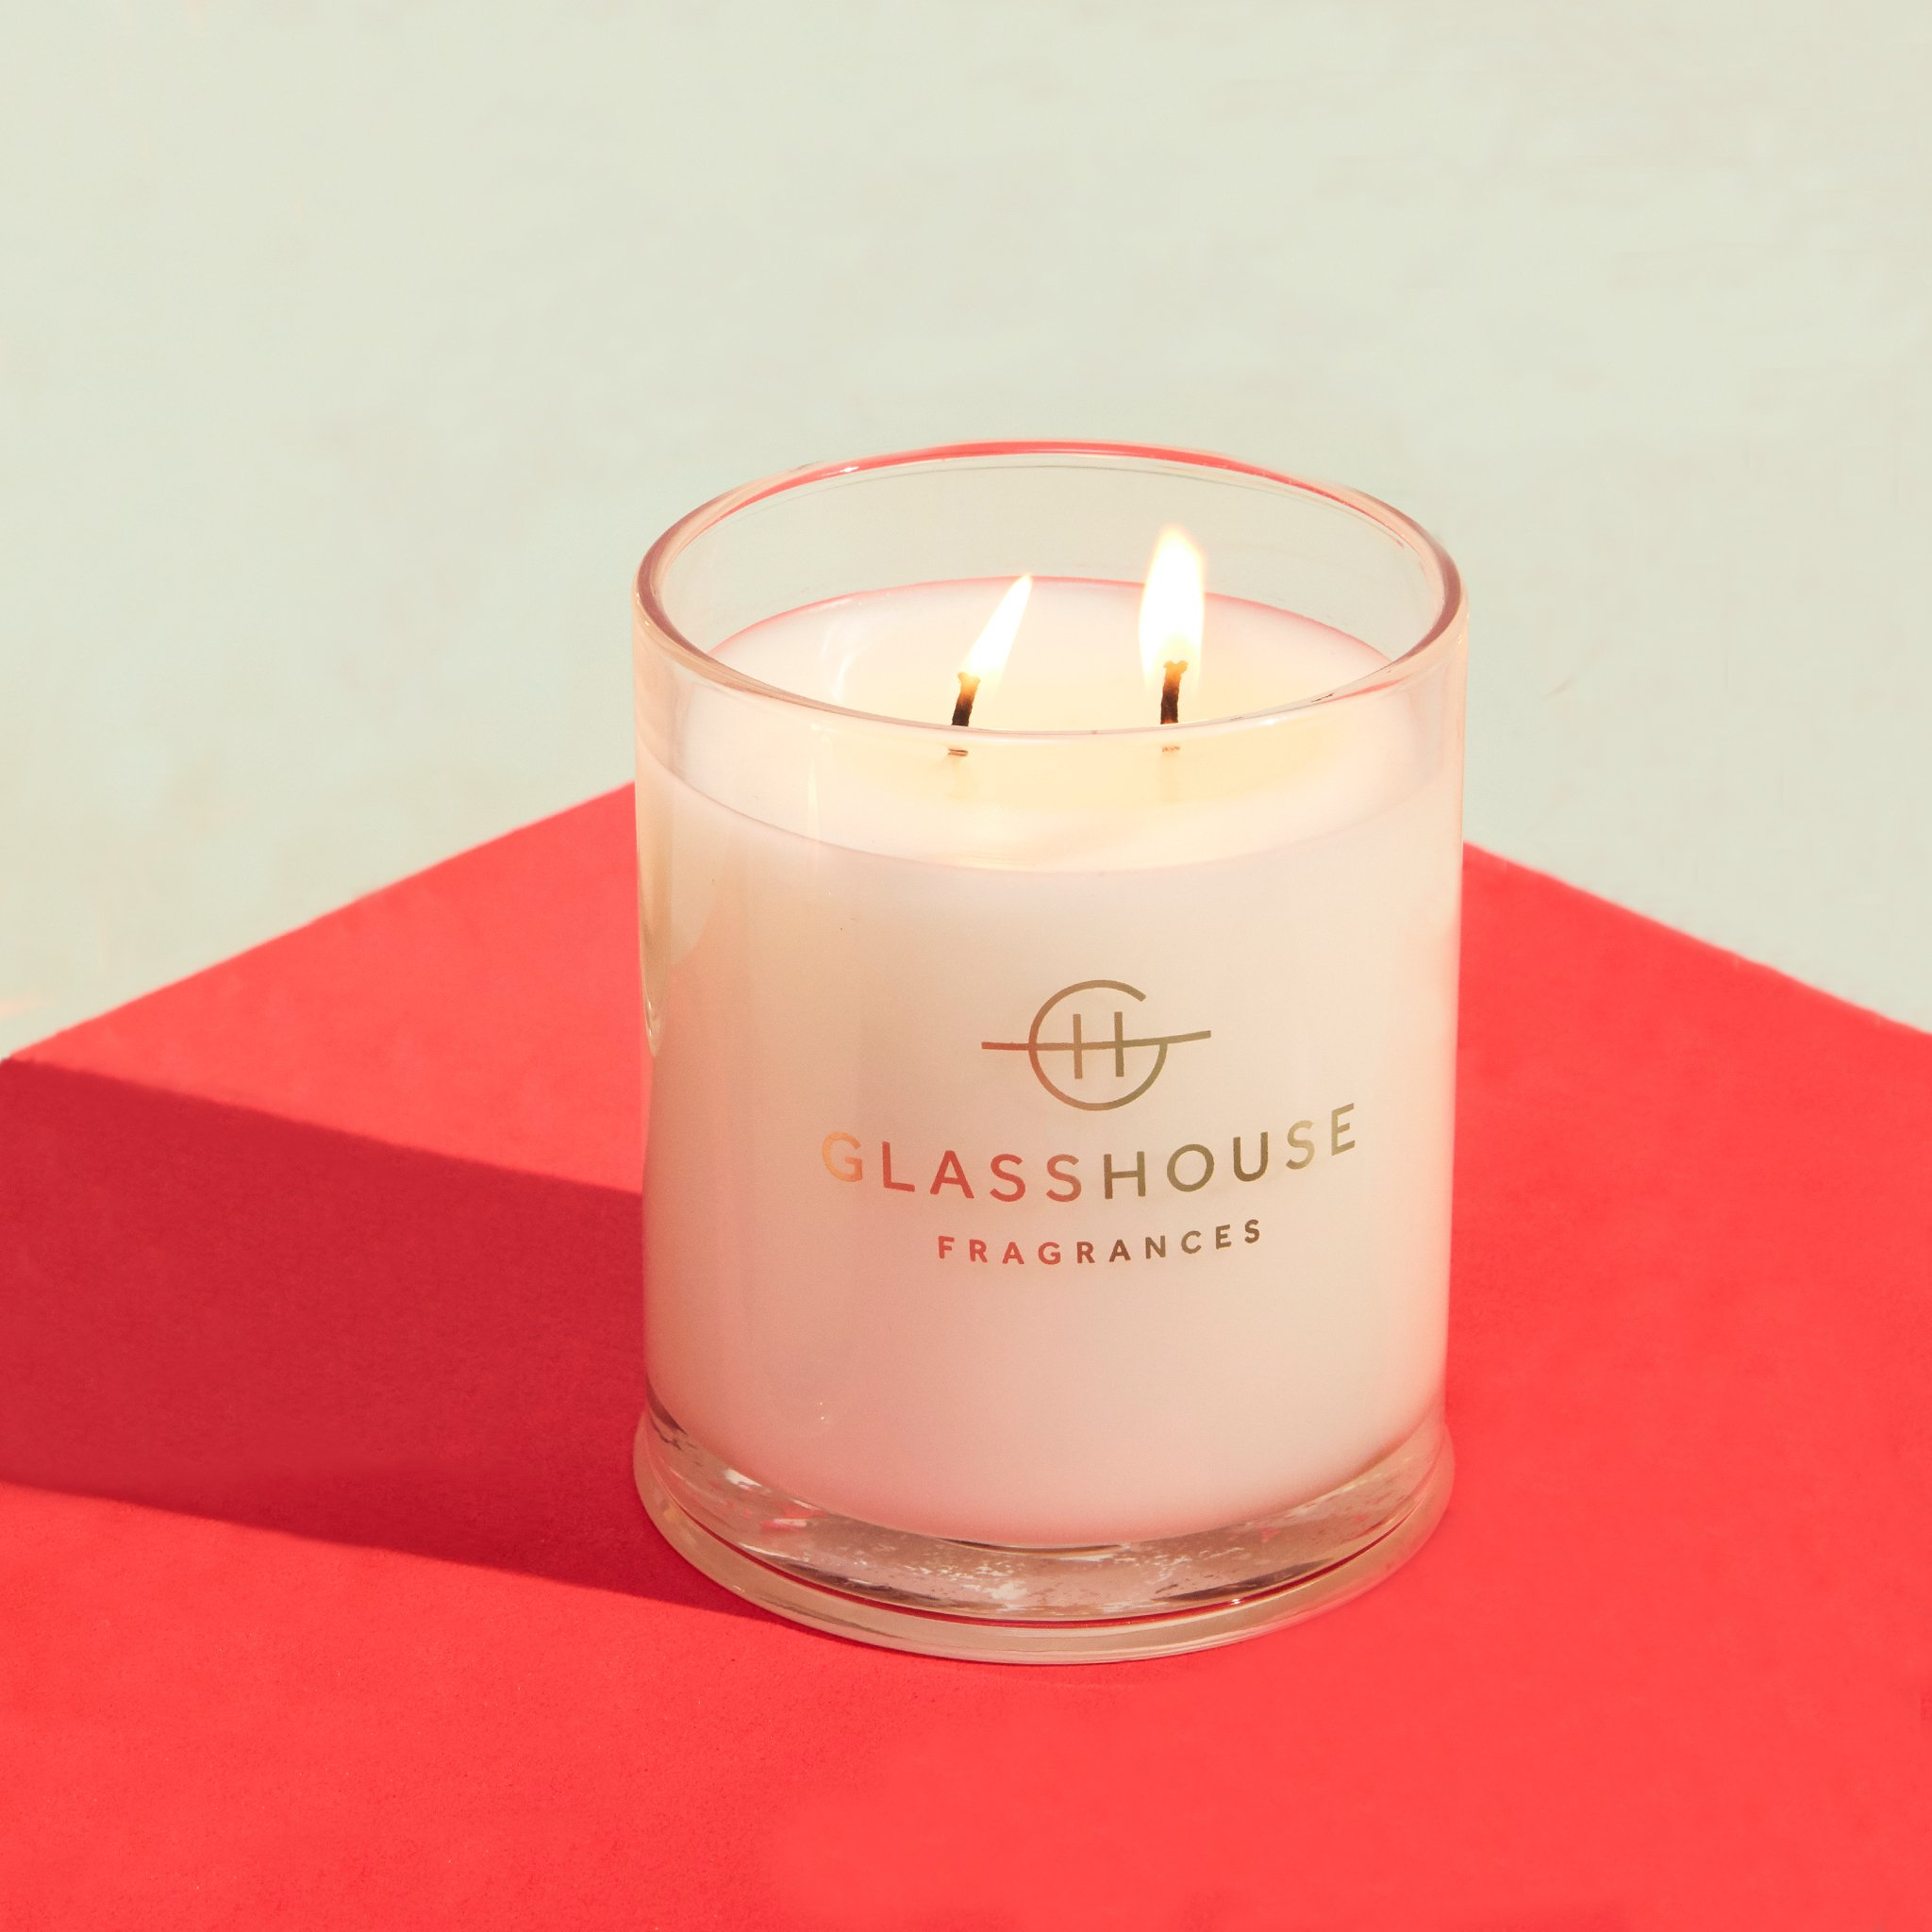 GLASSHOUSE FRAGRANCES Rendezvous 380g Candle